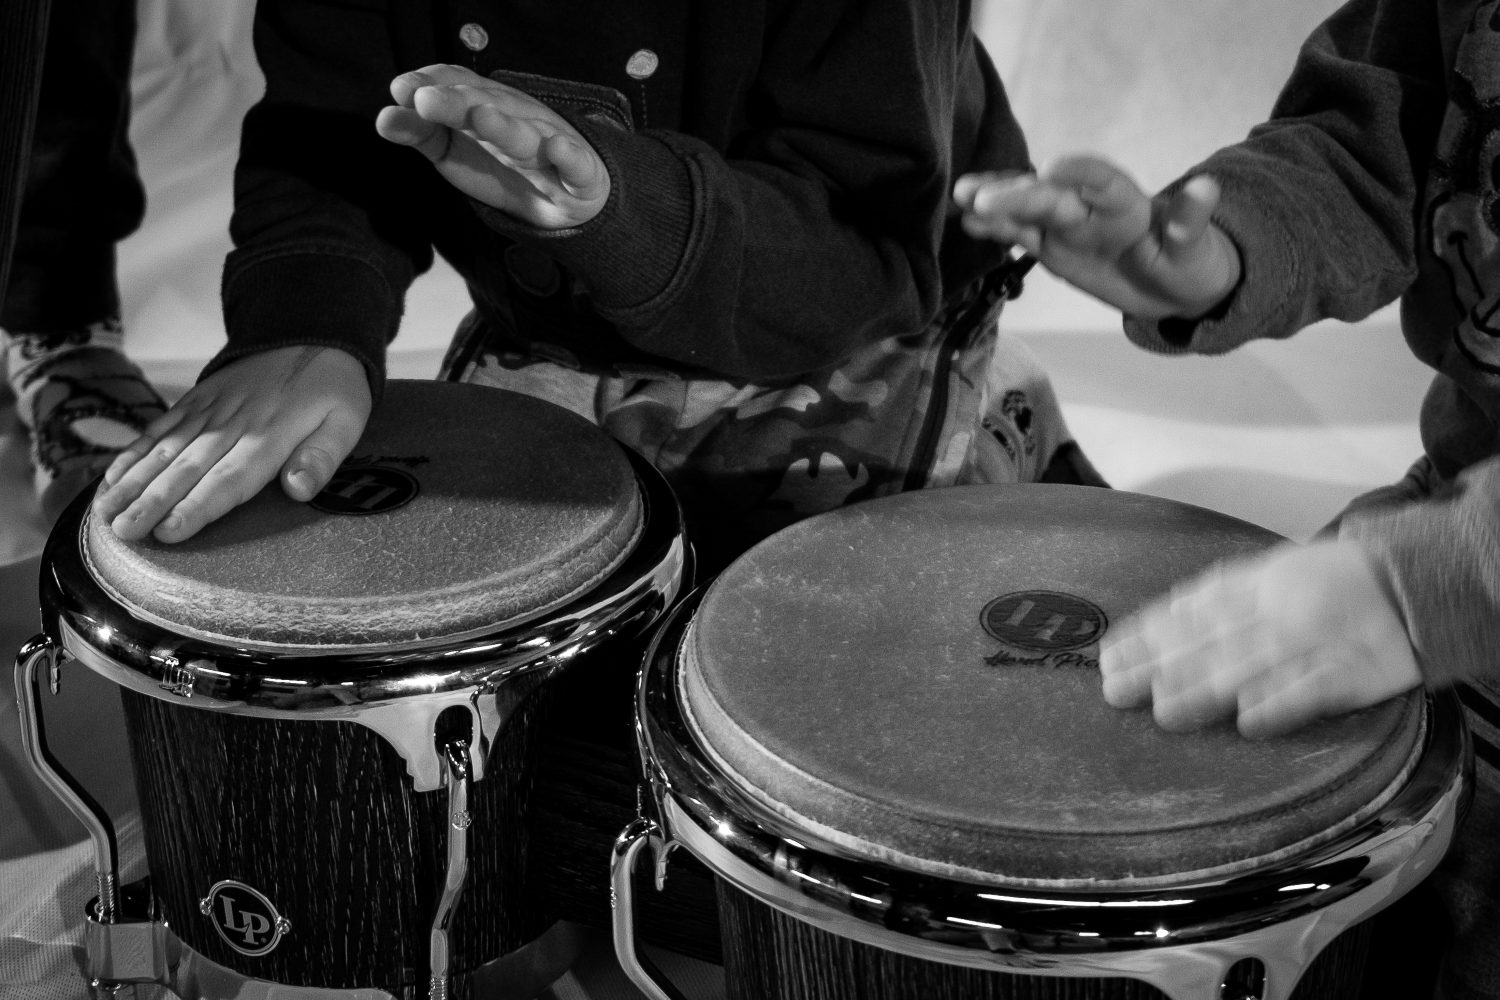 Children's hands drumming on congos.